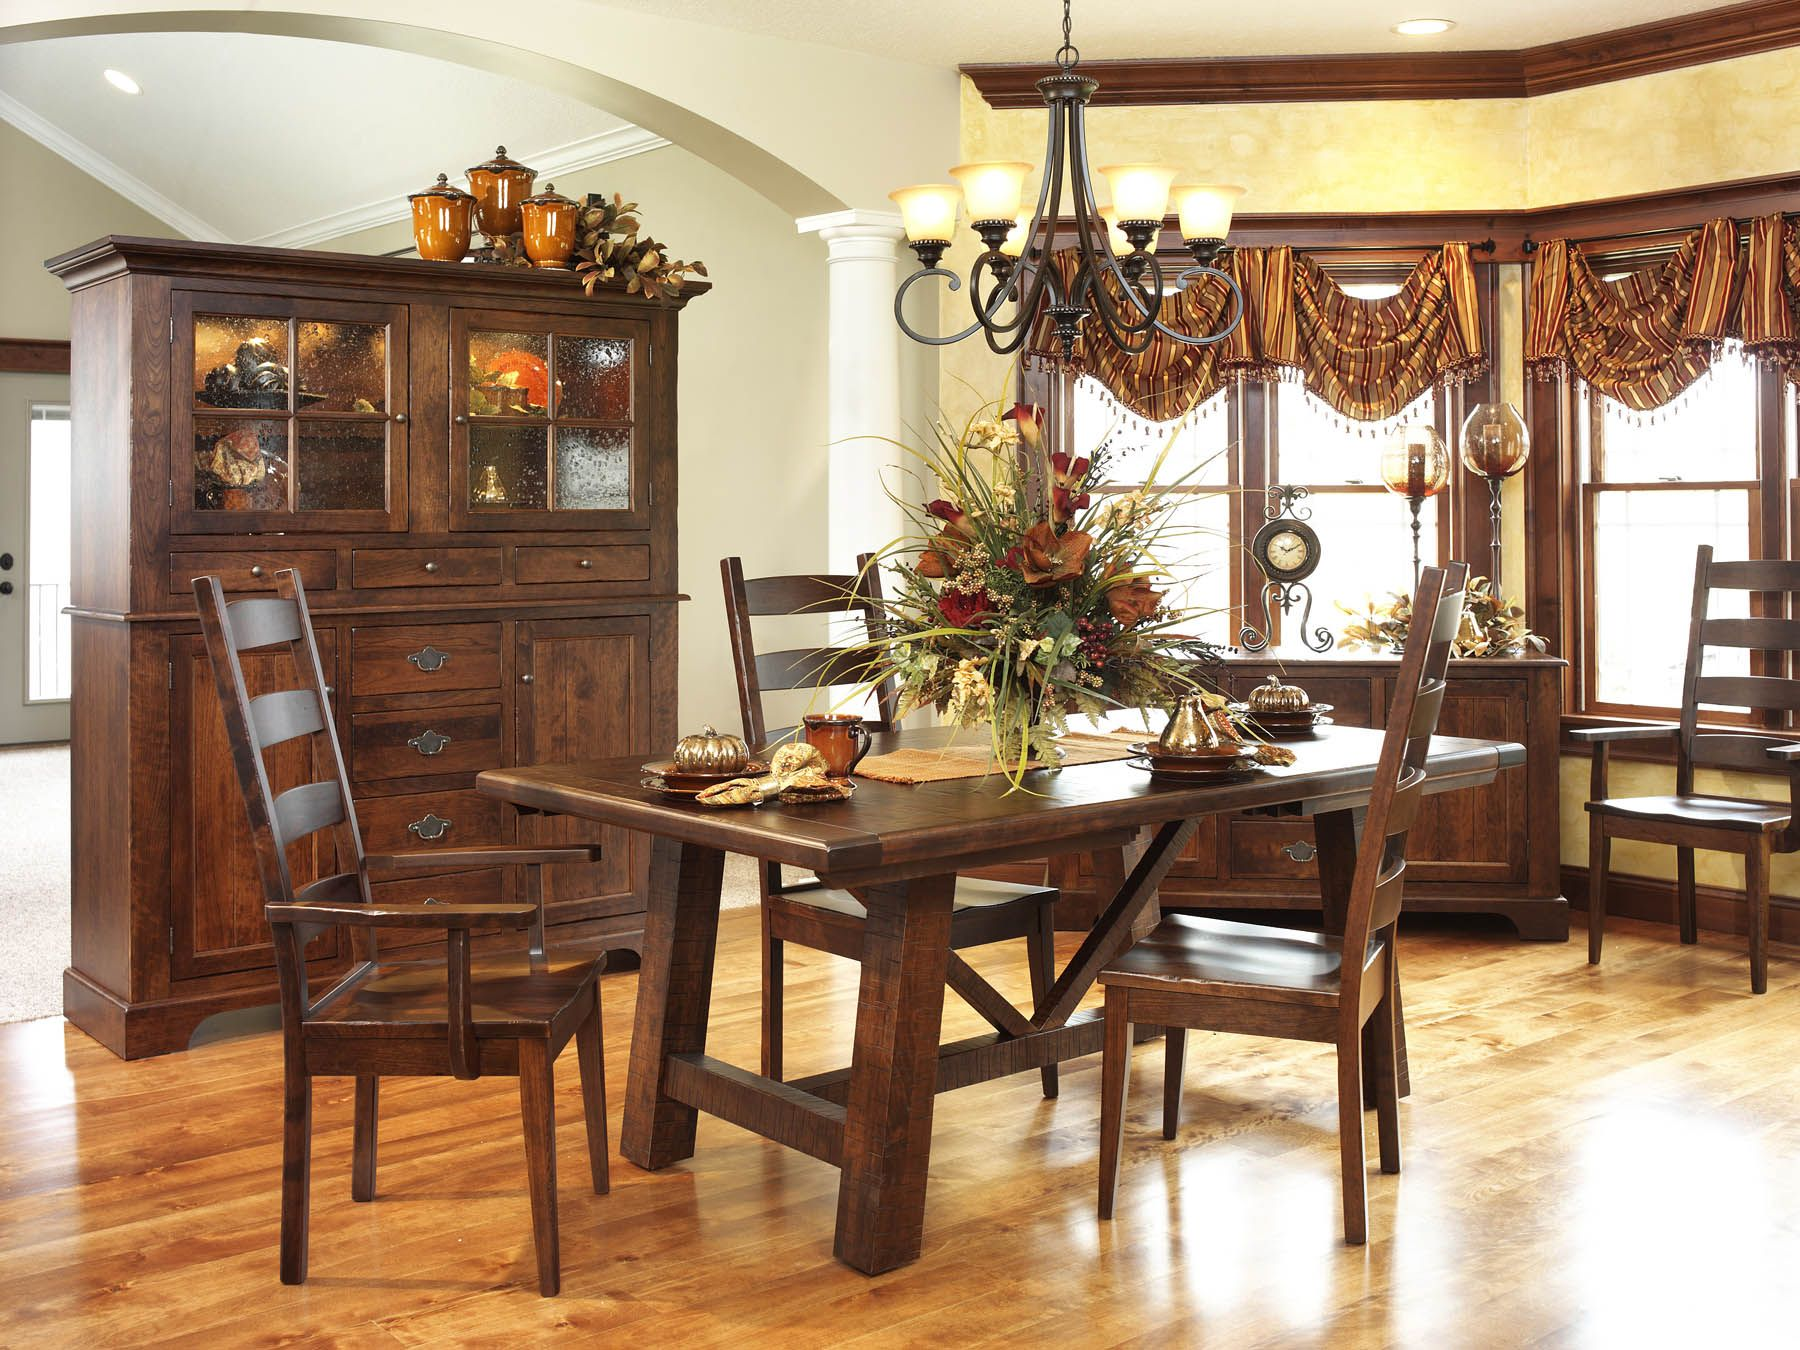 Early American Country Farmhouse Dining Room Set Amish